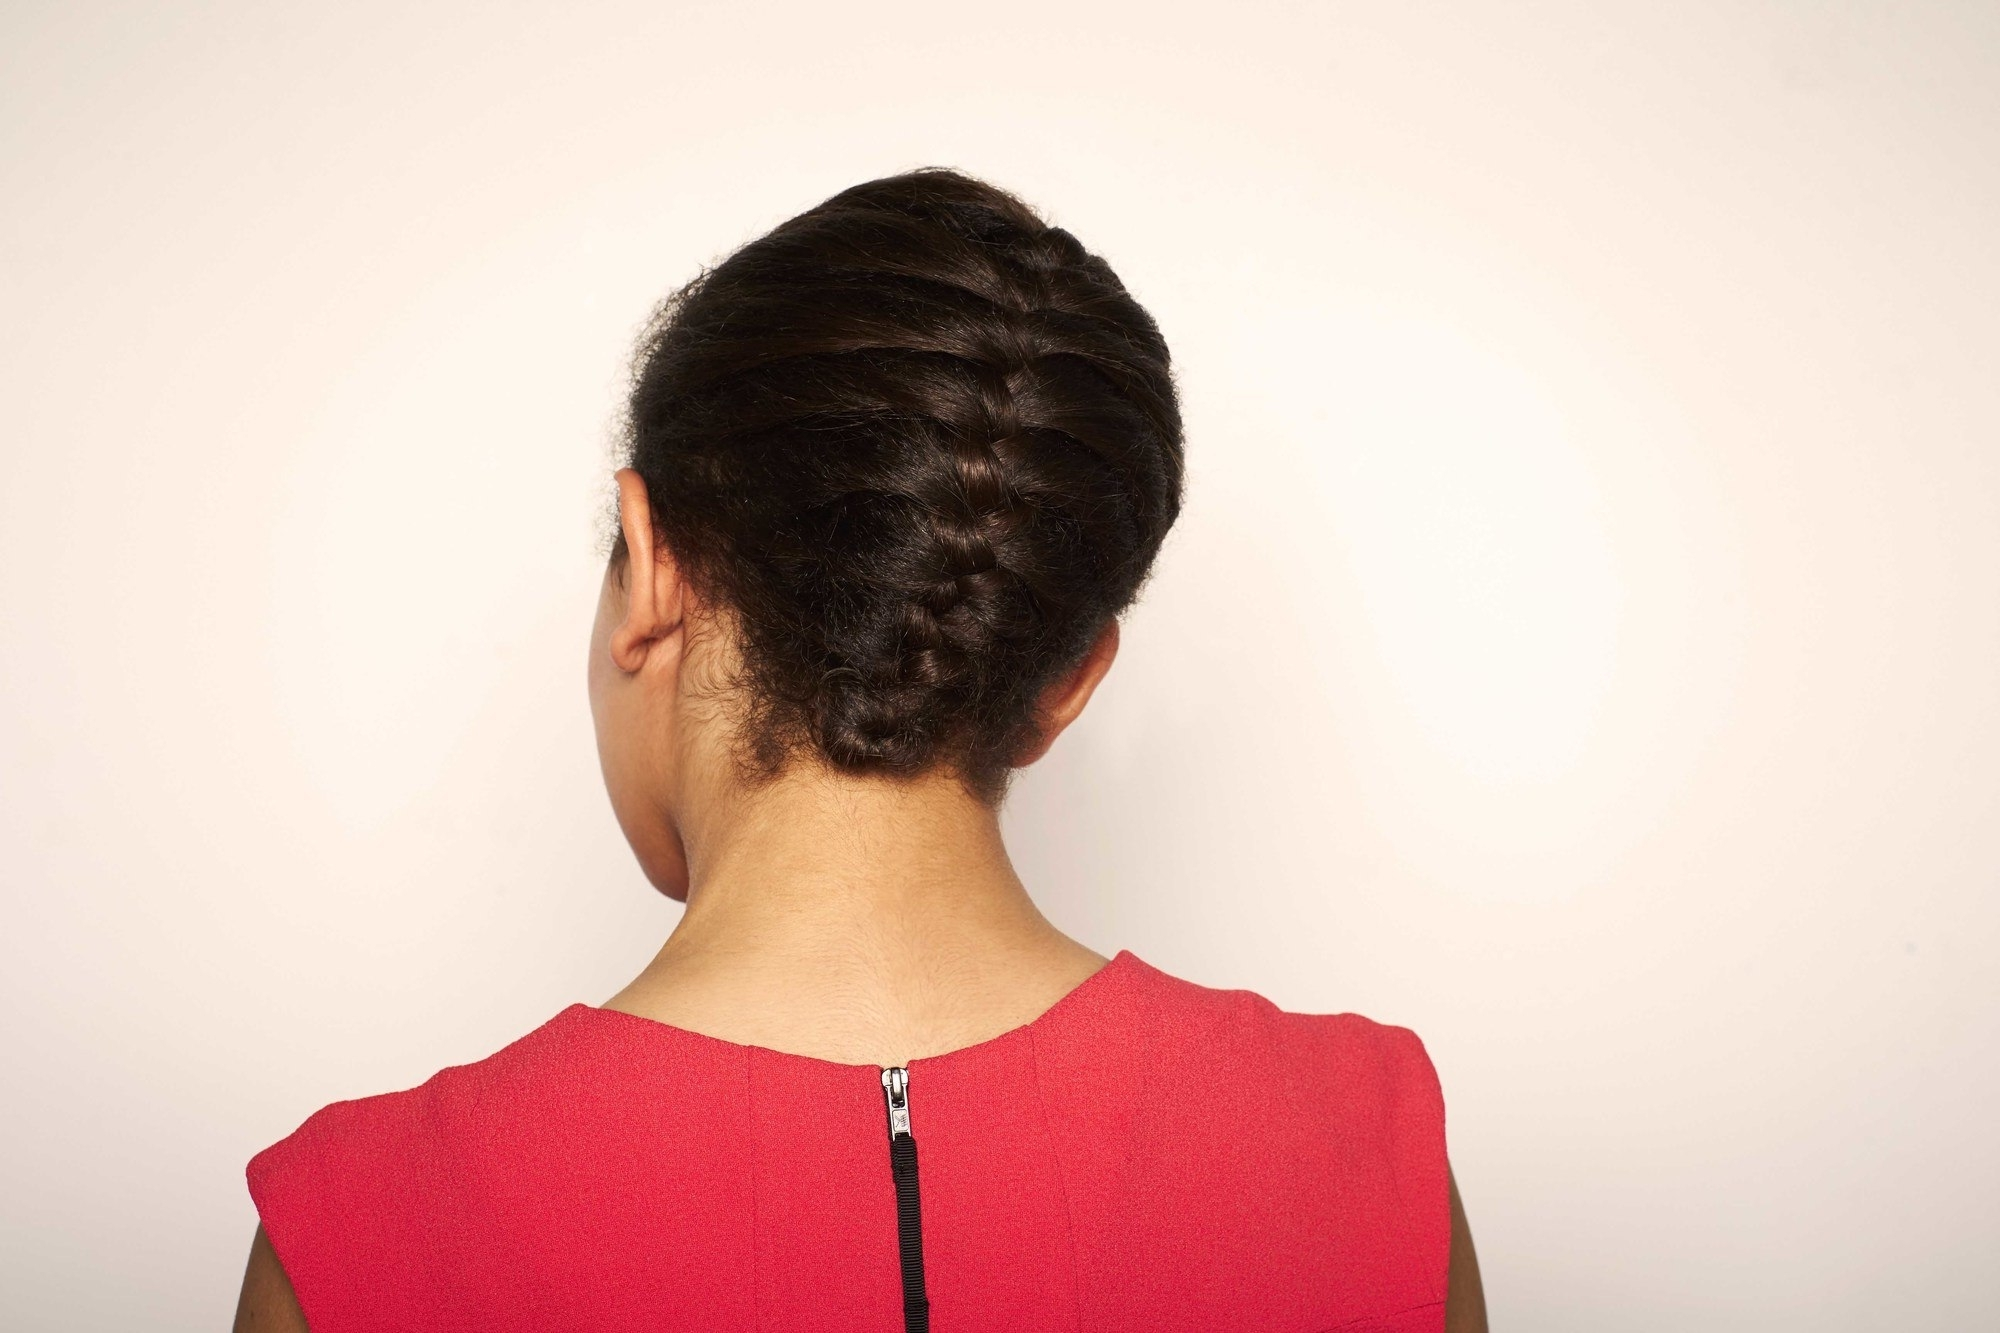 French Braid Hairstyles: 8 Casual Weekend Plaits To Try With Regard To Most Popular Double French Braid Crown Ponytail Hairstyles (View 10 of 20)